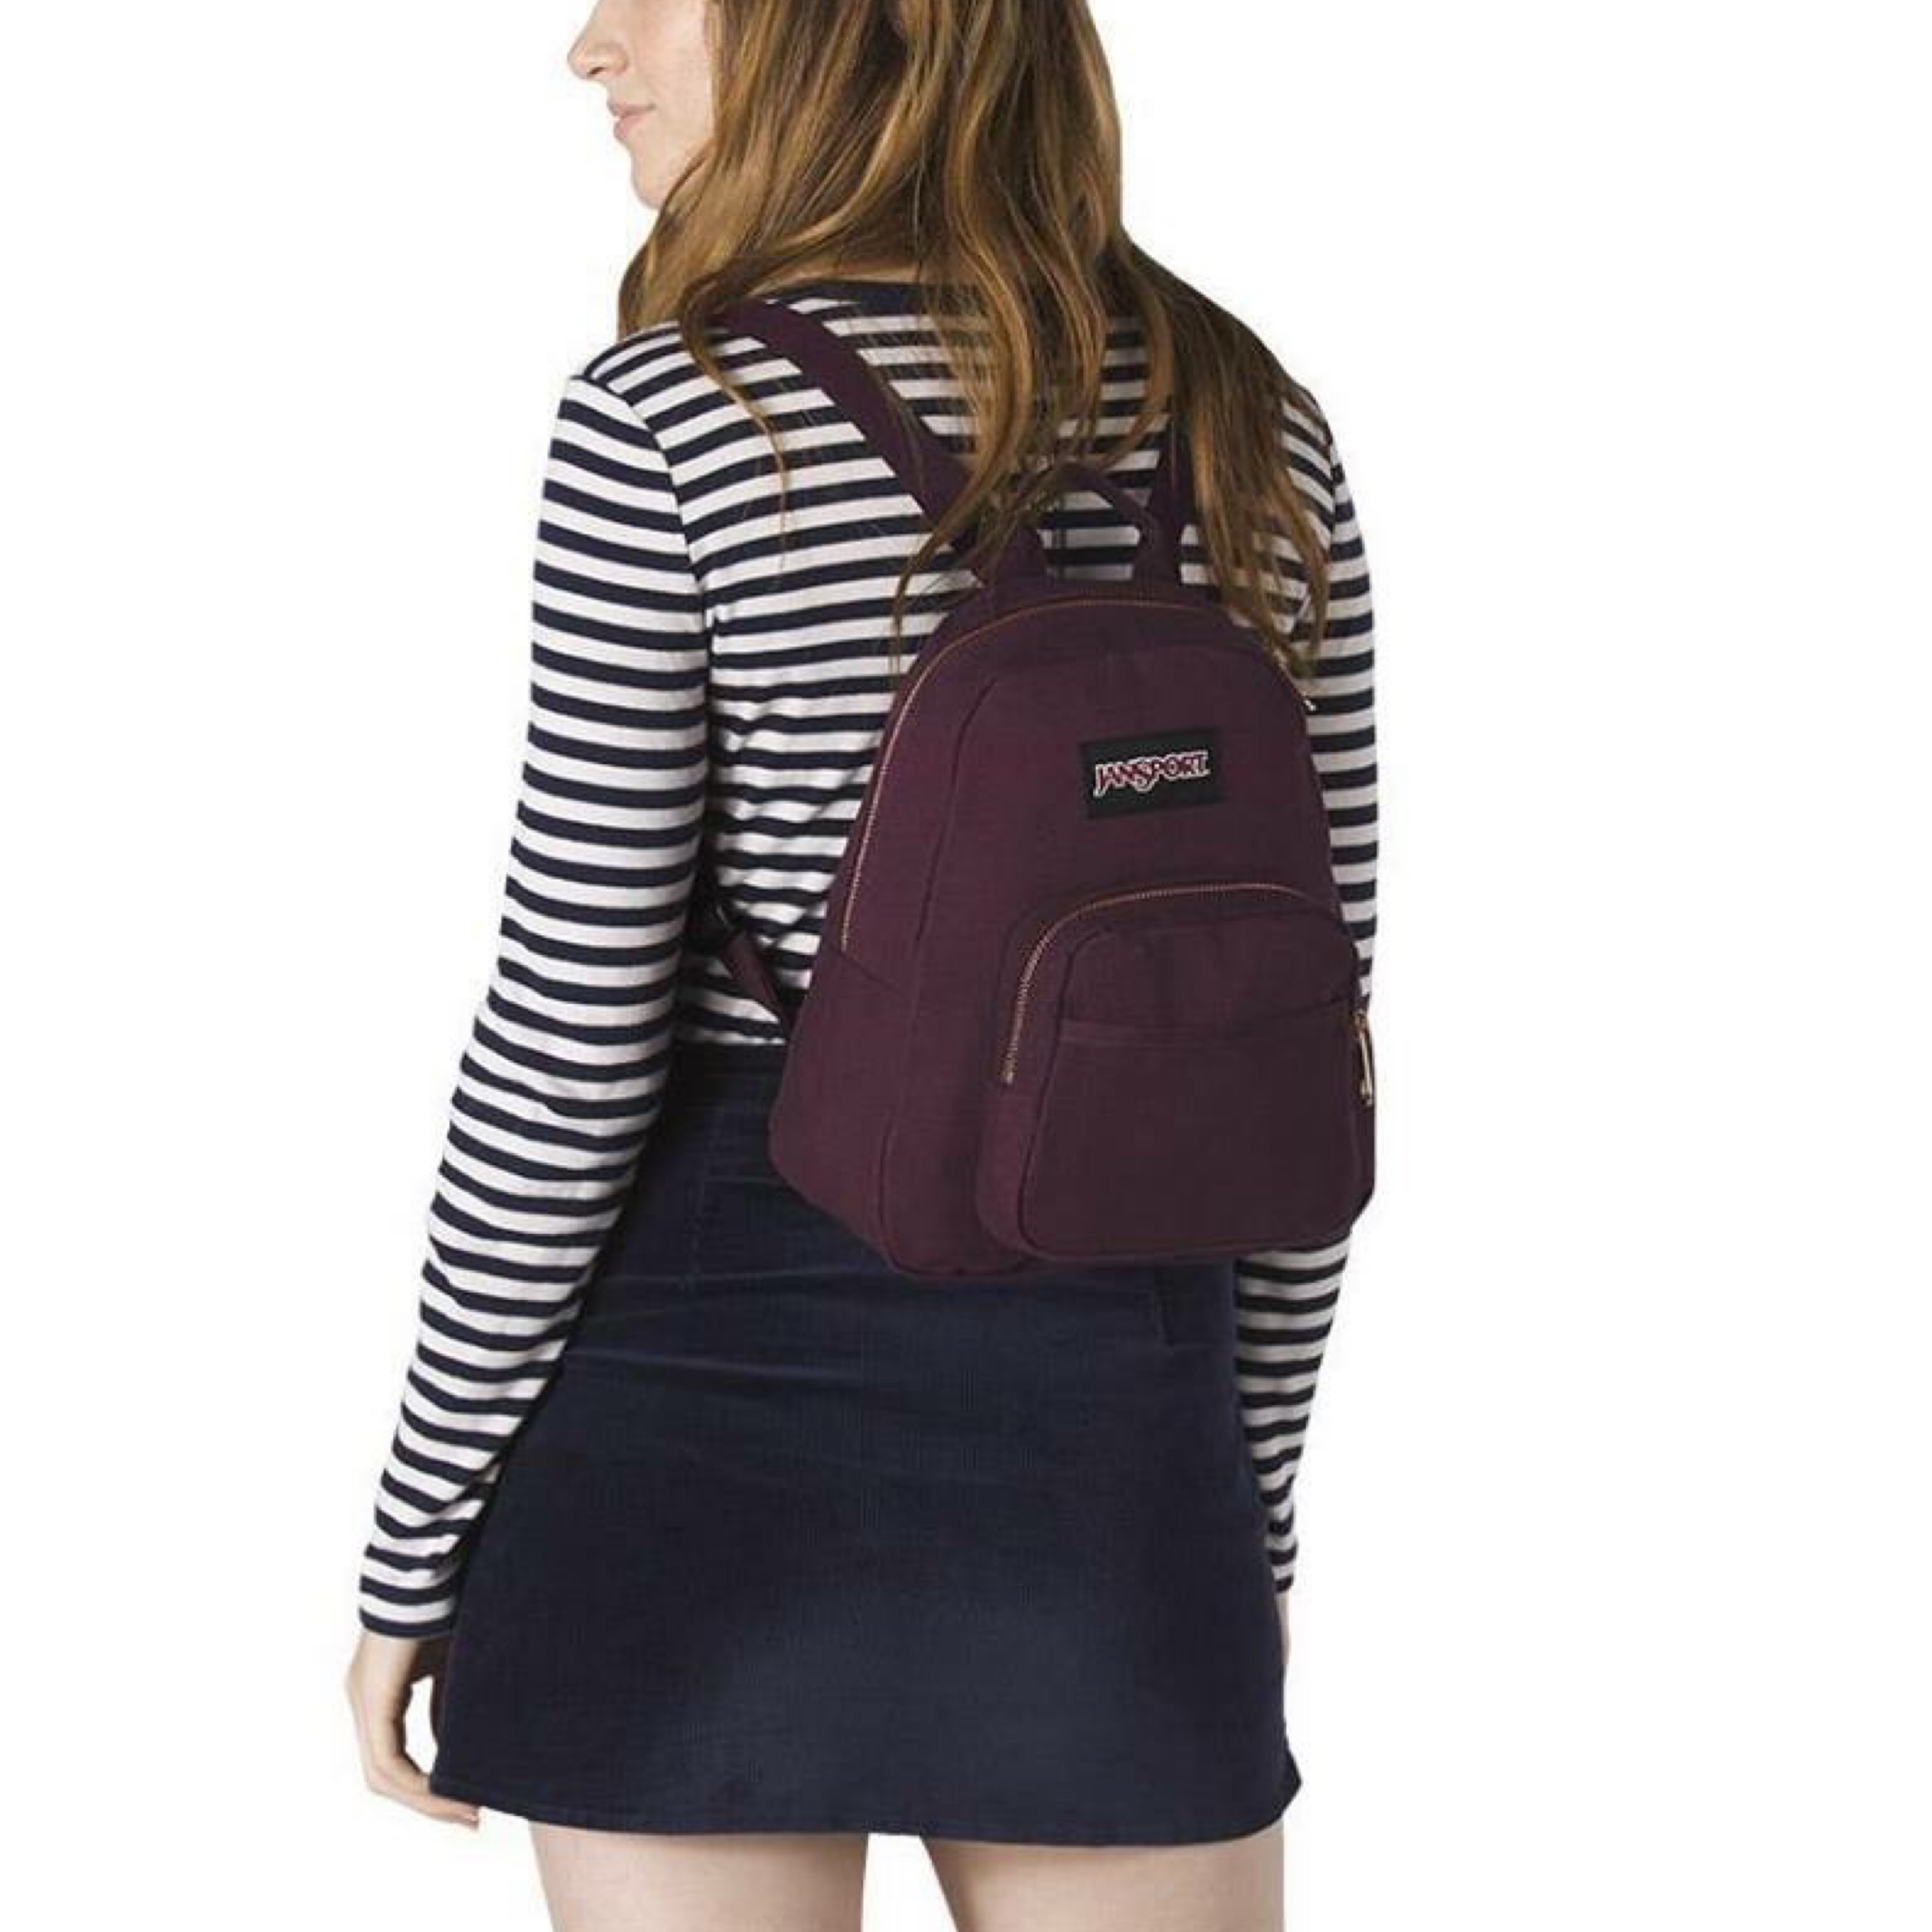 293c43c84de Jansport Half Pint Fx Mini Backpack Dried Fig Rose Gold | Building ...